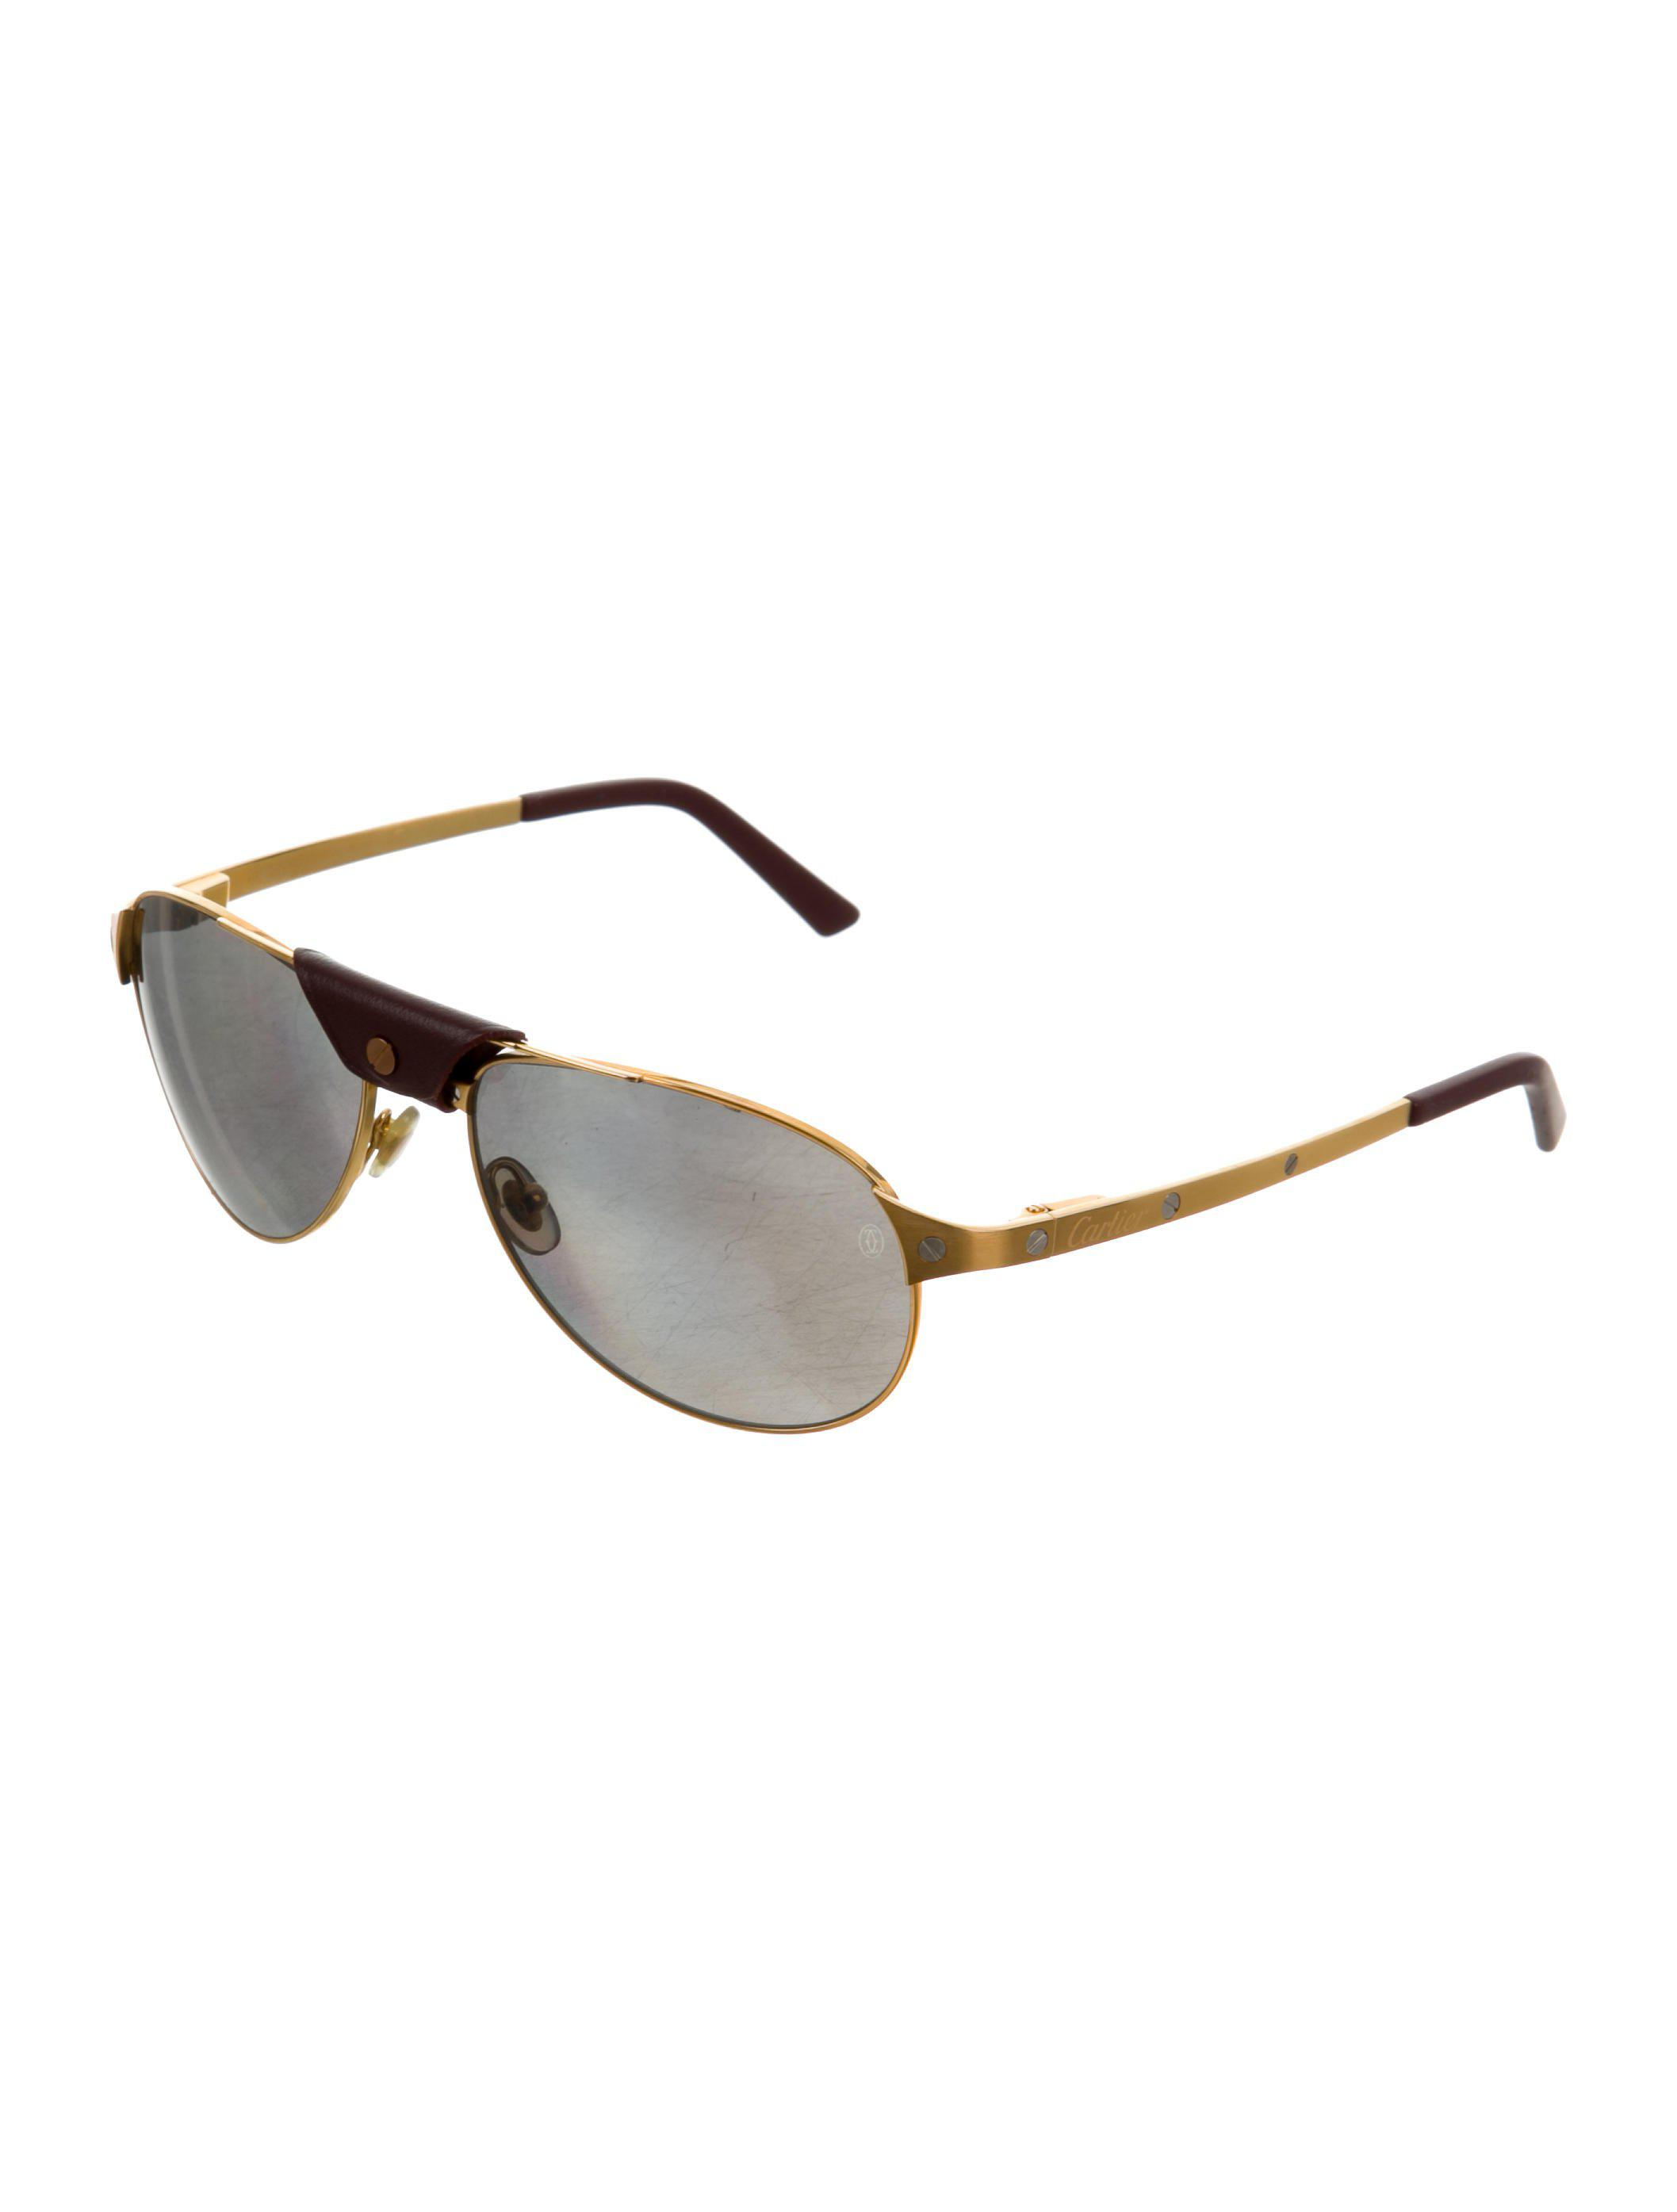 04e3d40ffb38 Cartier Aviator Sunglasses Gold - Restaurant and Palinka Bar